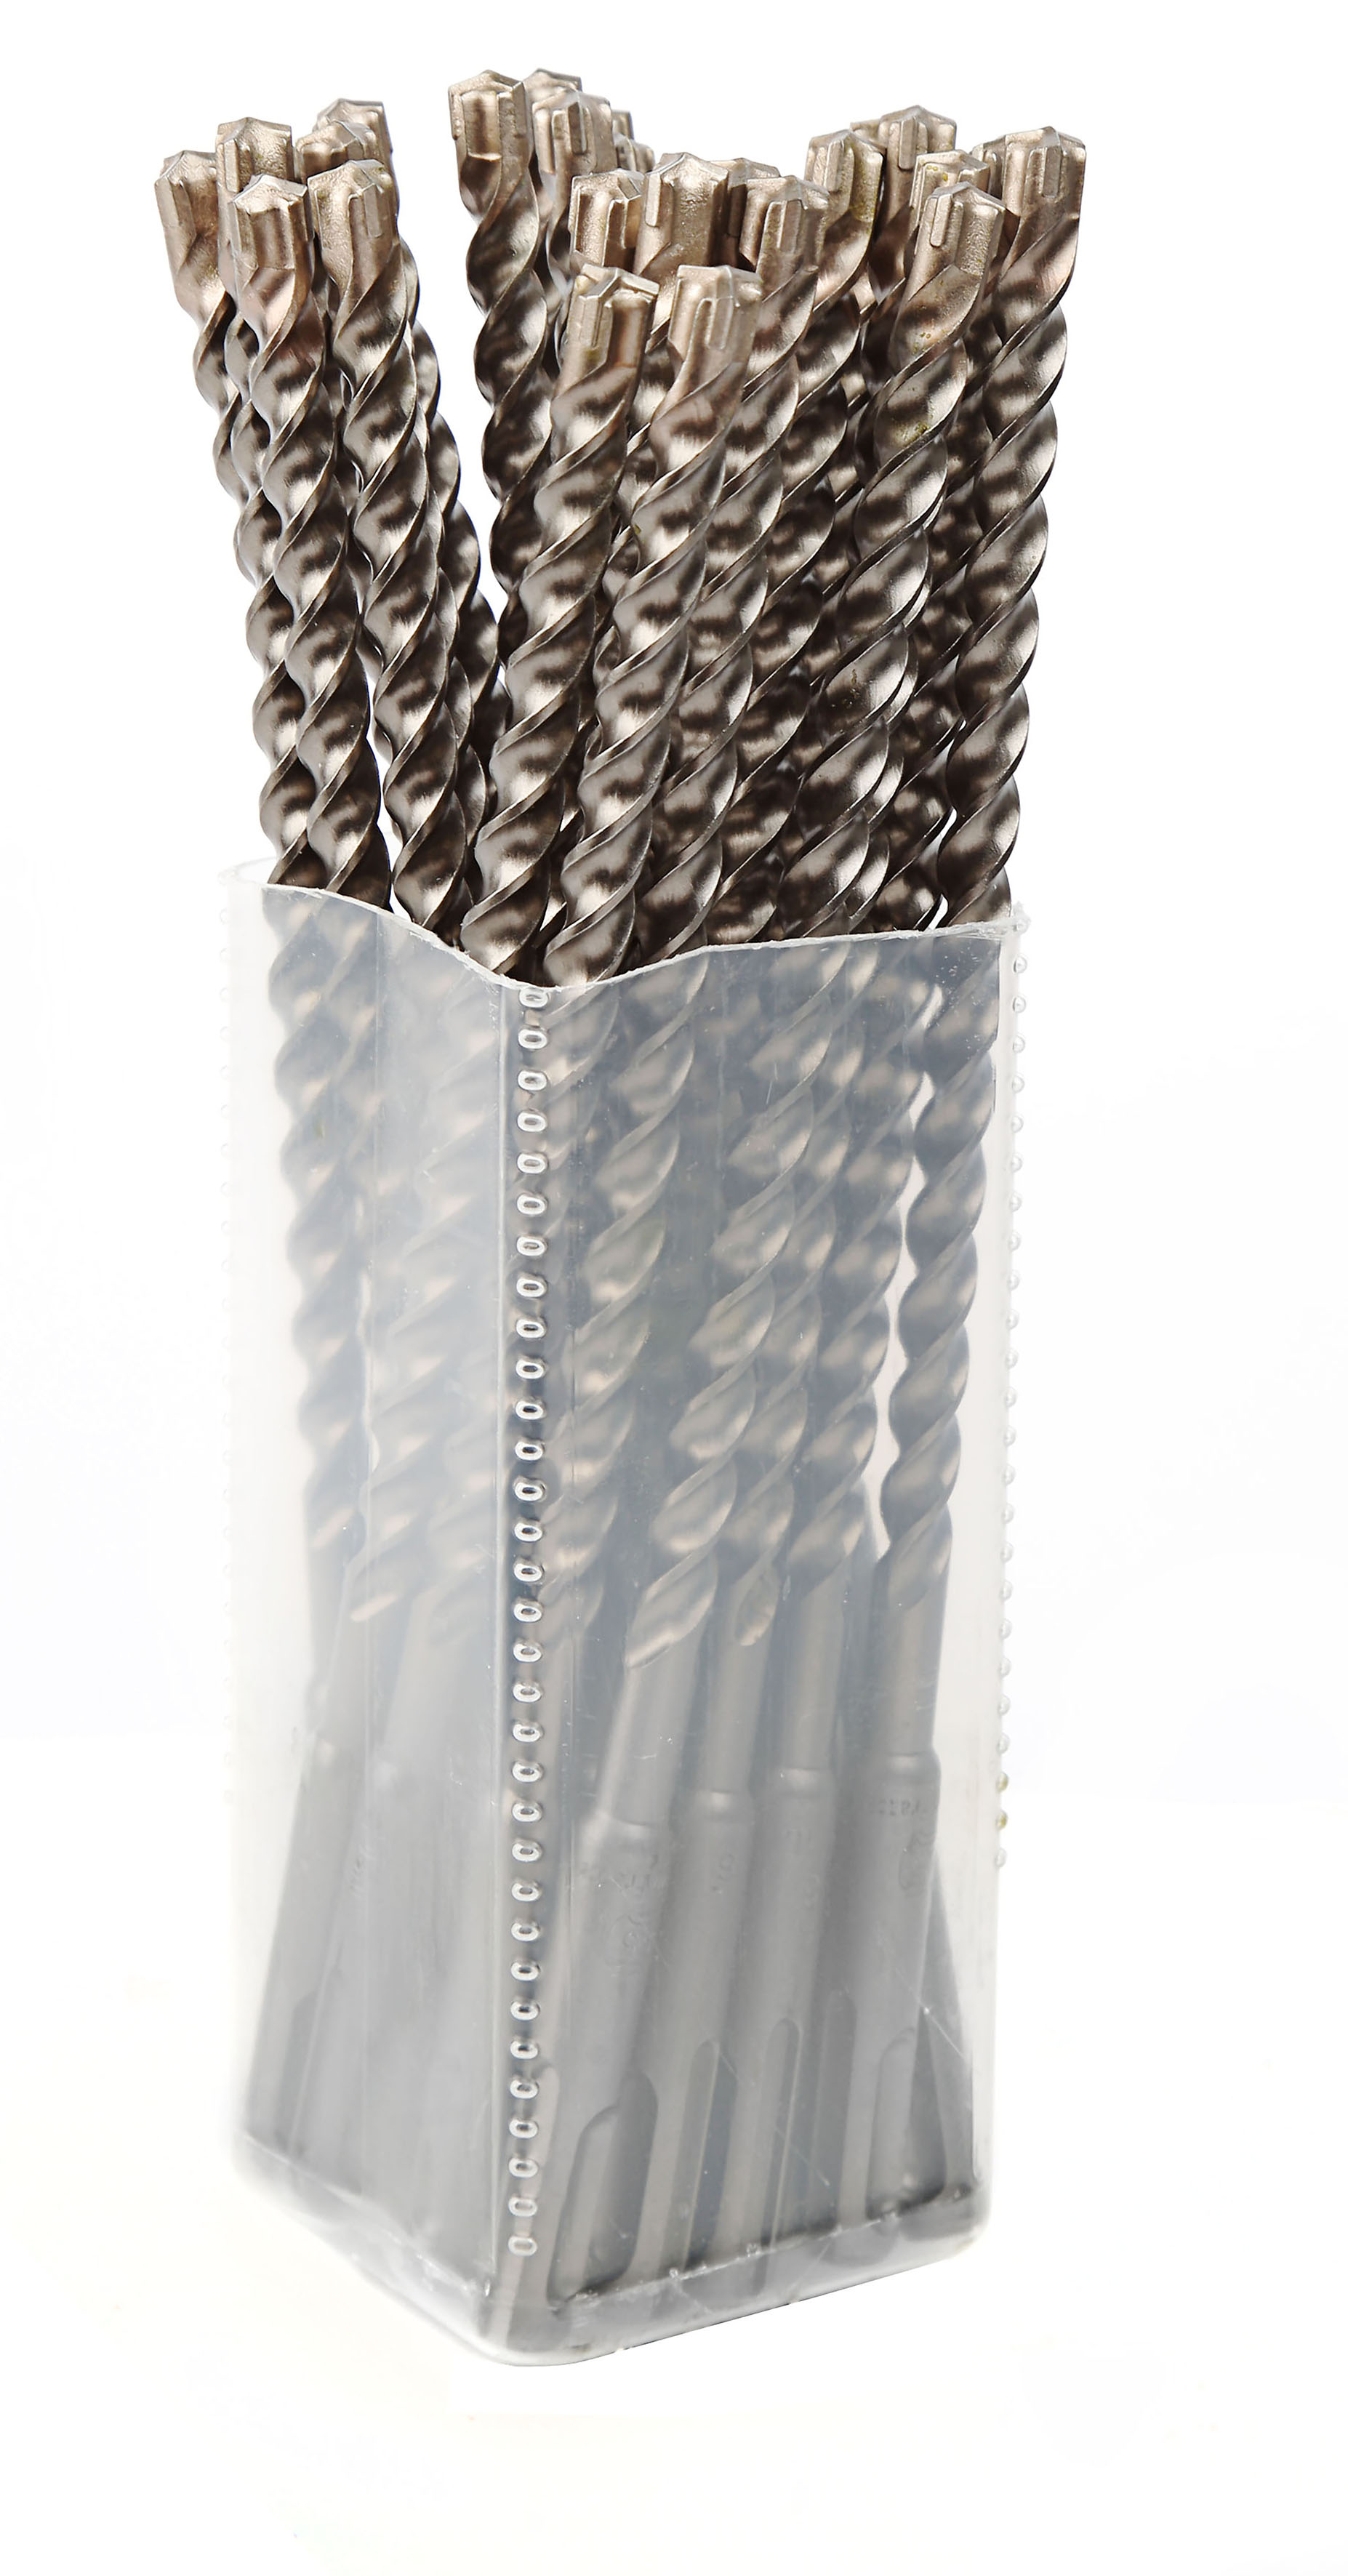 Drilling Booster Plus Hammer drill bit 3 cutting edges compatible SDS+ pack 25 pcs - 157M.jpg